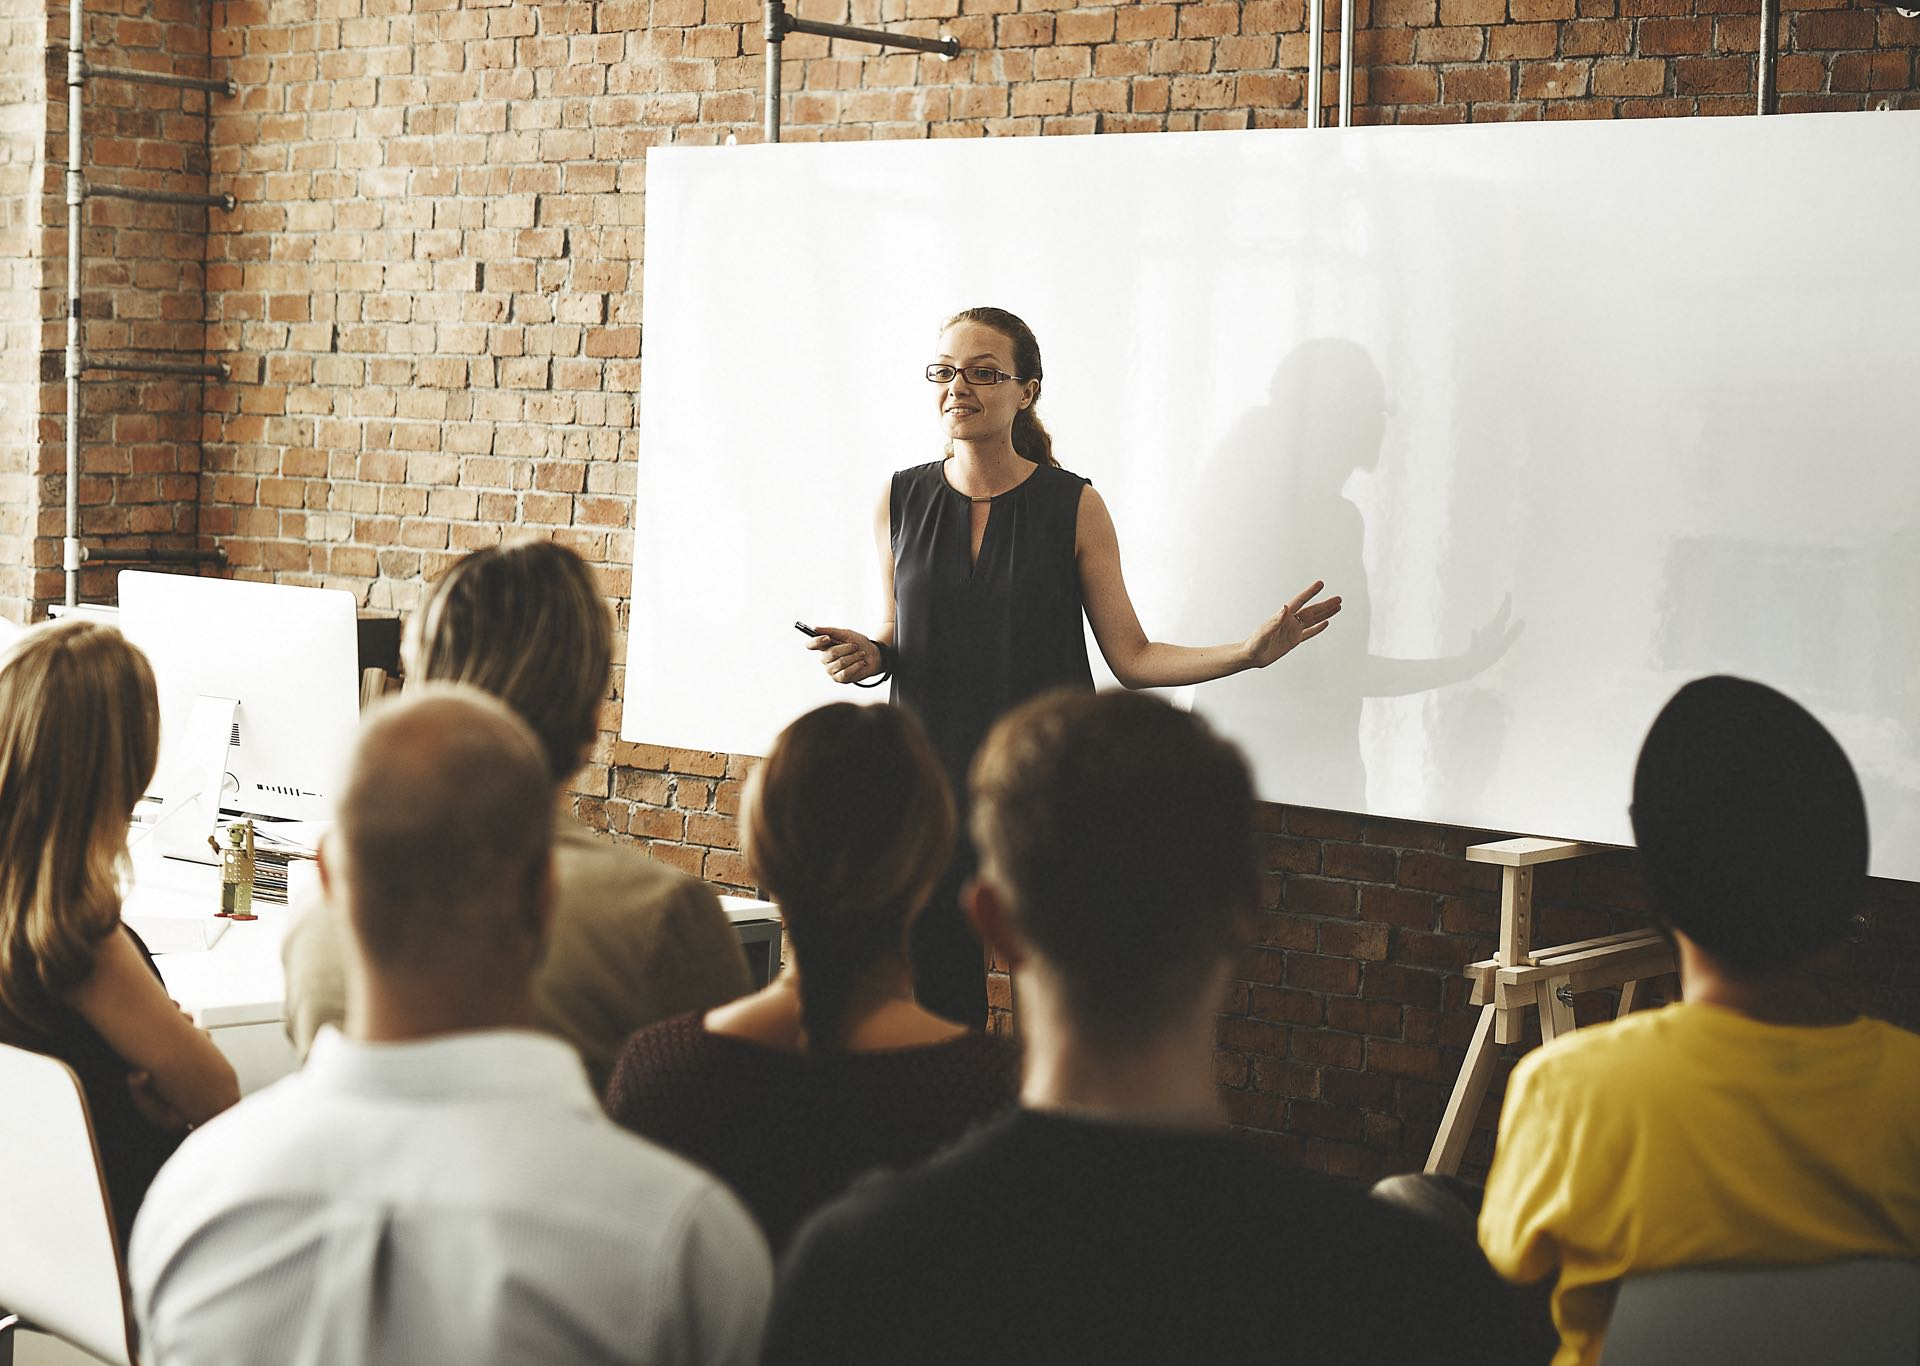 Training Sessions can improve employee performance